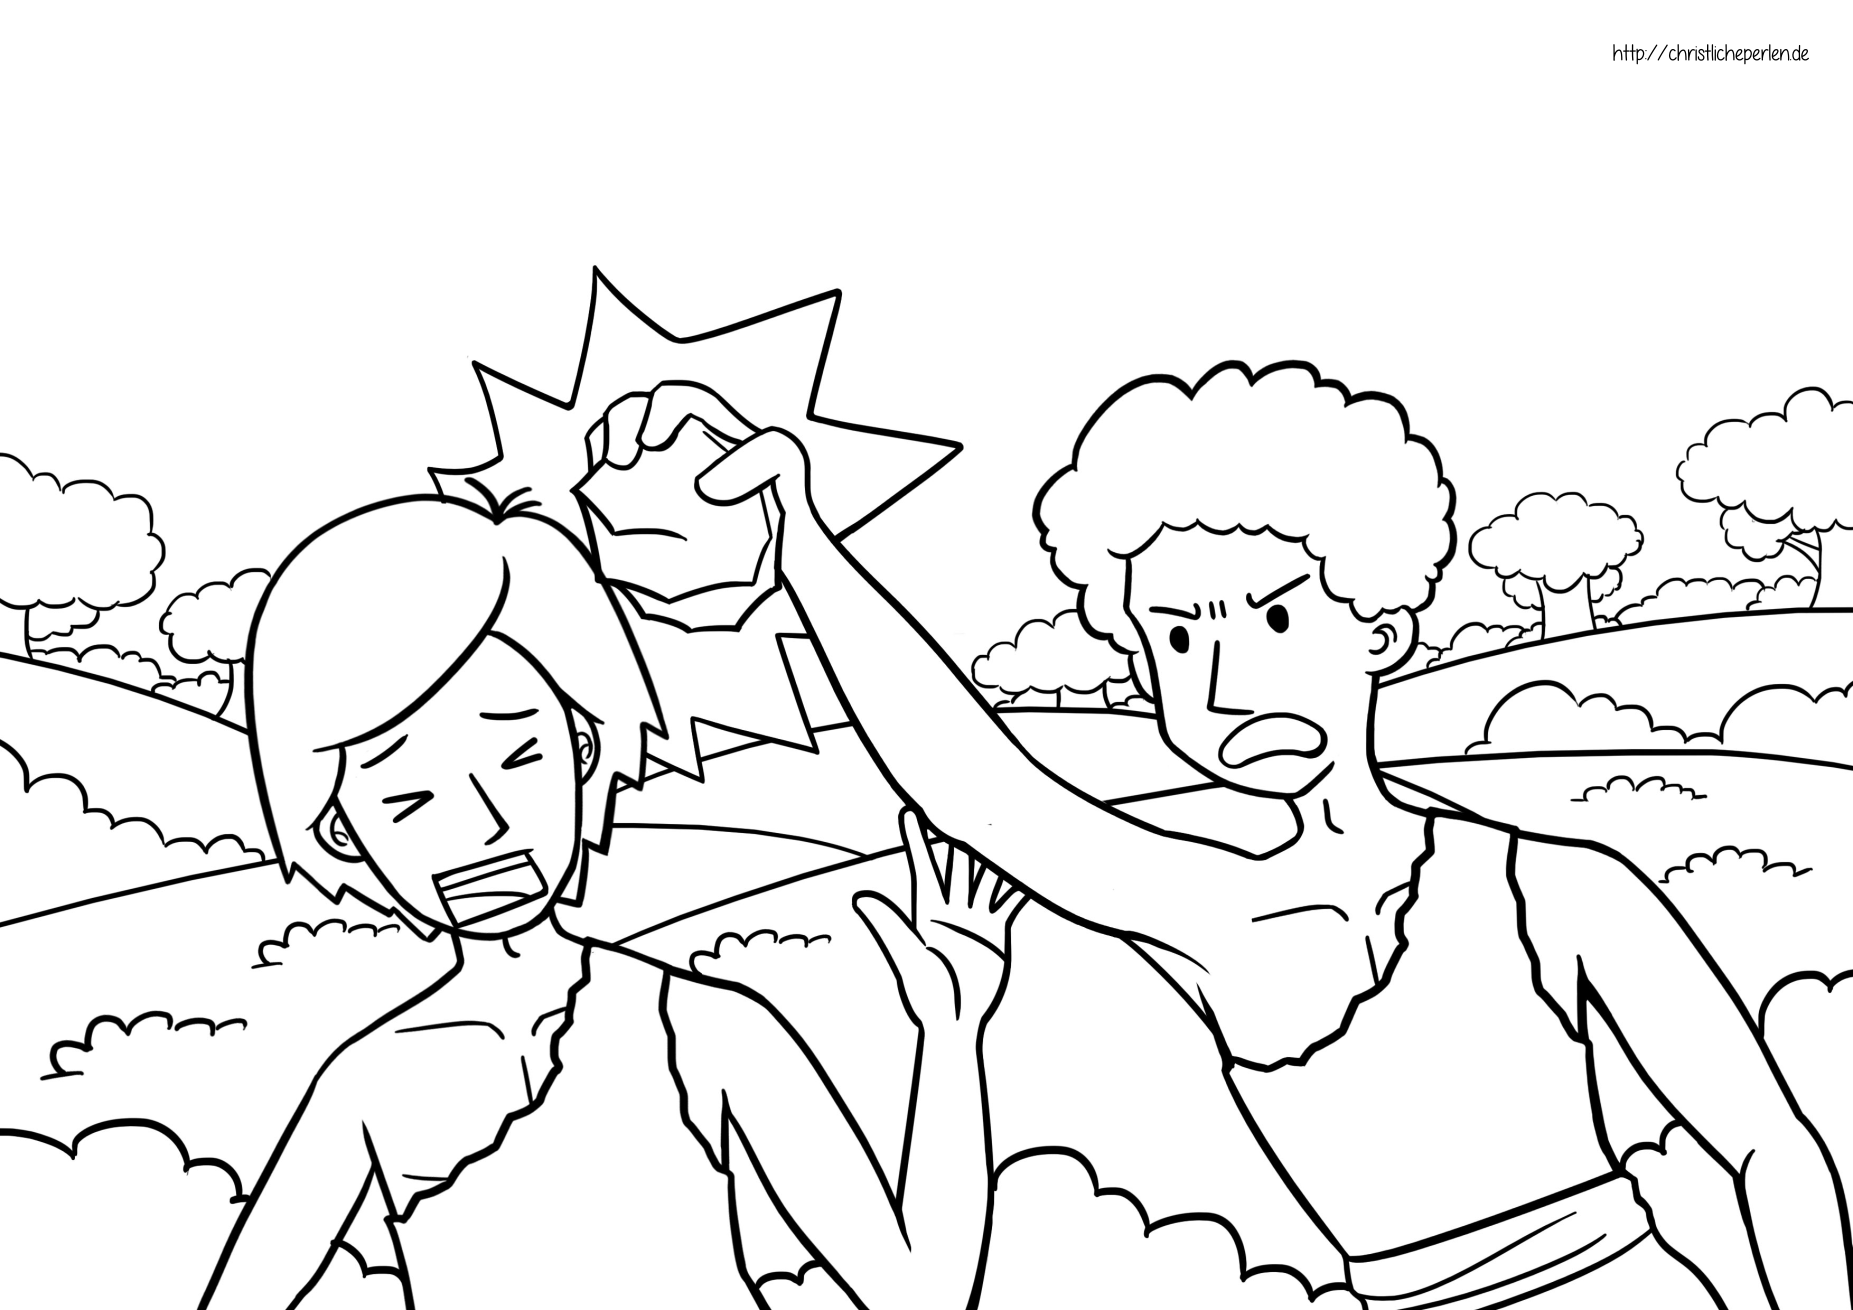 Kain Und Abel Ausmalen Cain And Abel Coloring Pages